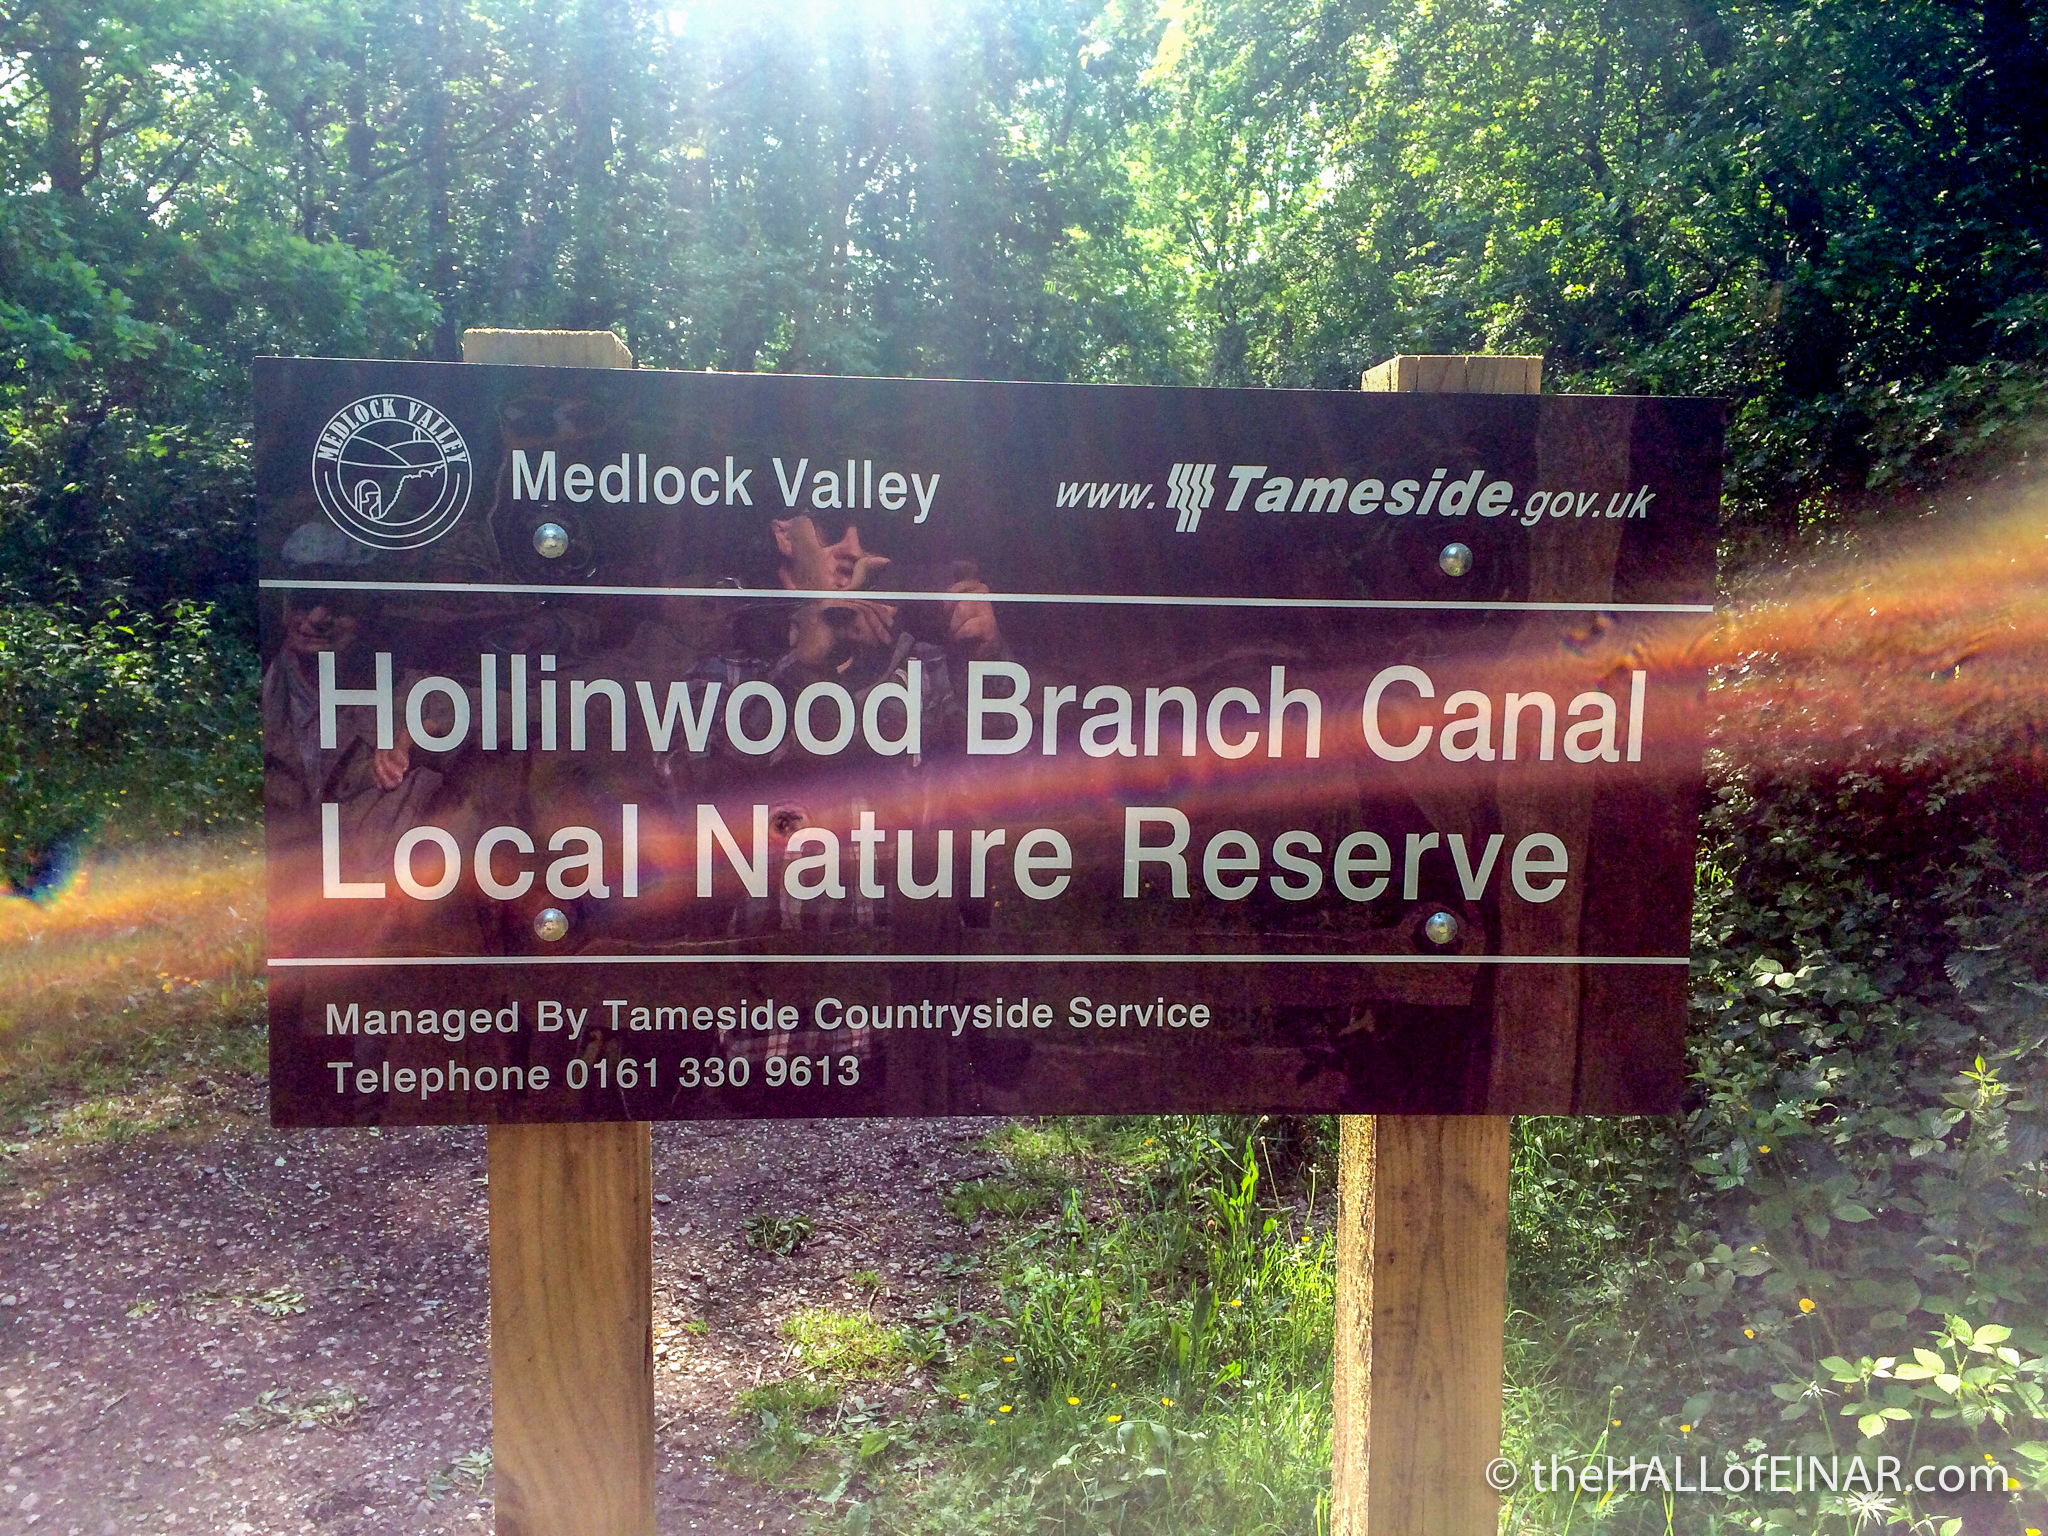 Hollinwood Branch Canal - Local Nature Reserve - The Hall of Einar - photograph (c) David Bailey (not the)